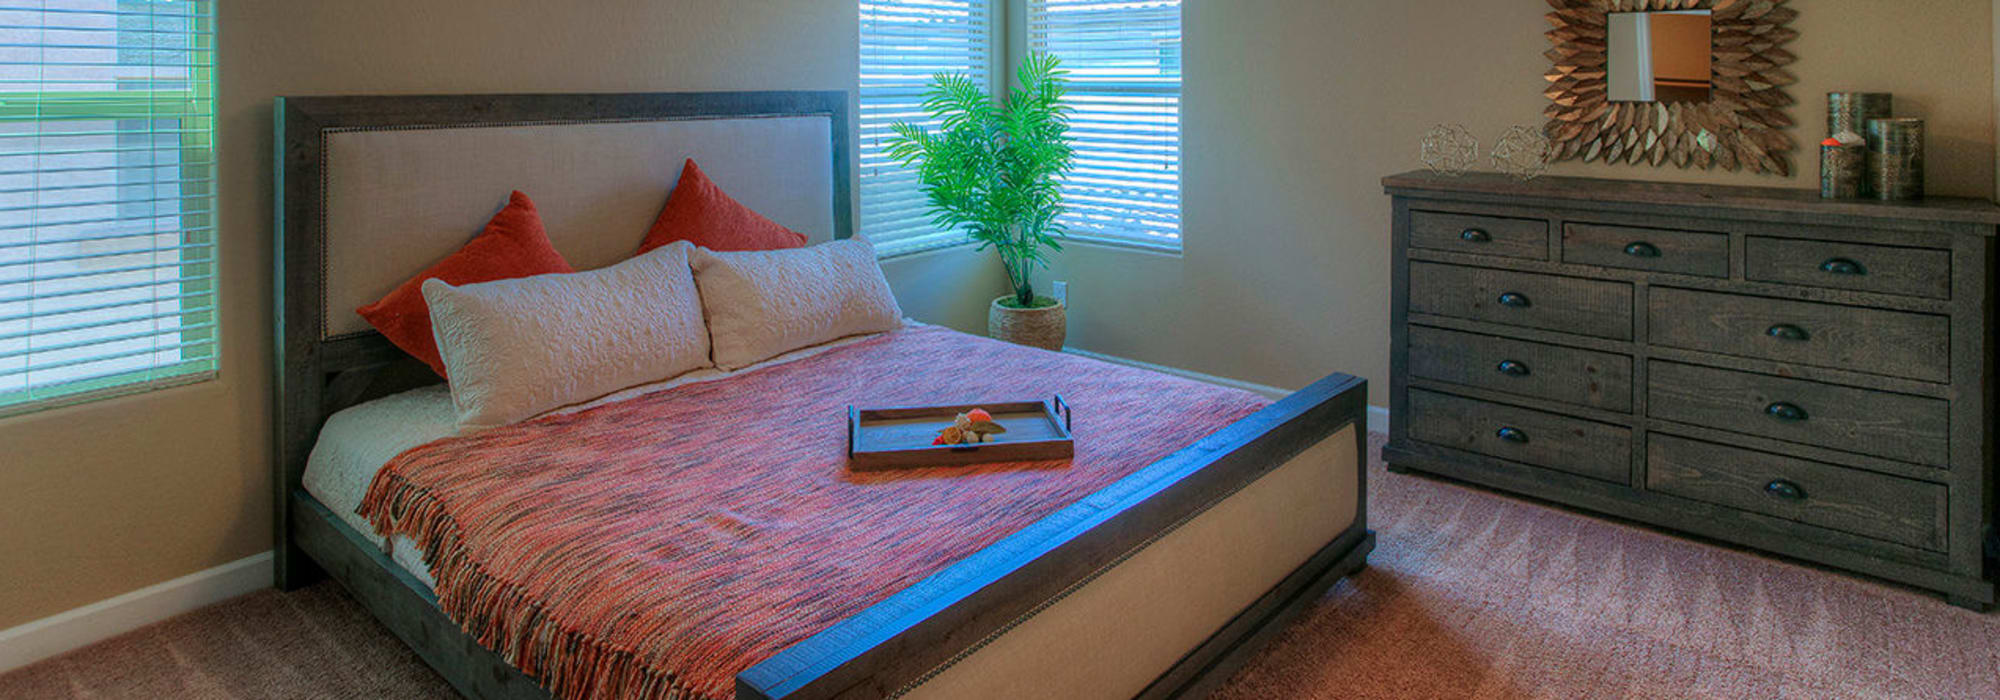 Master bedroom at BB Living at Higley Park in Gilbert, Arizona